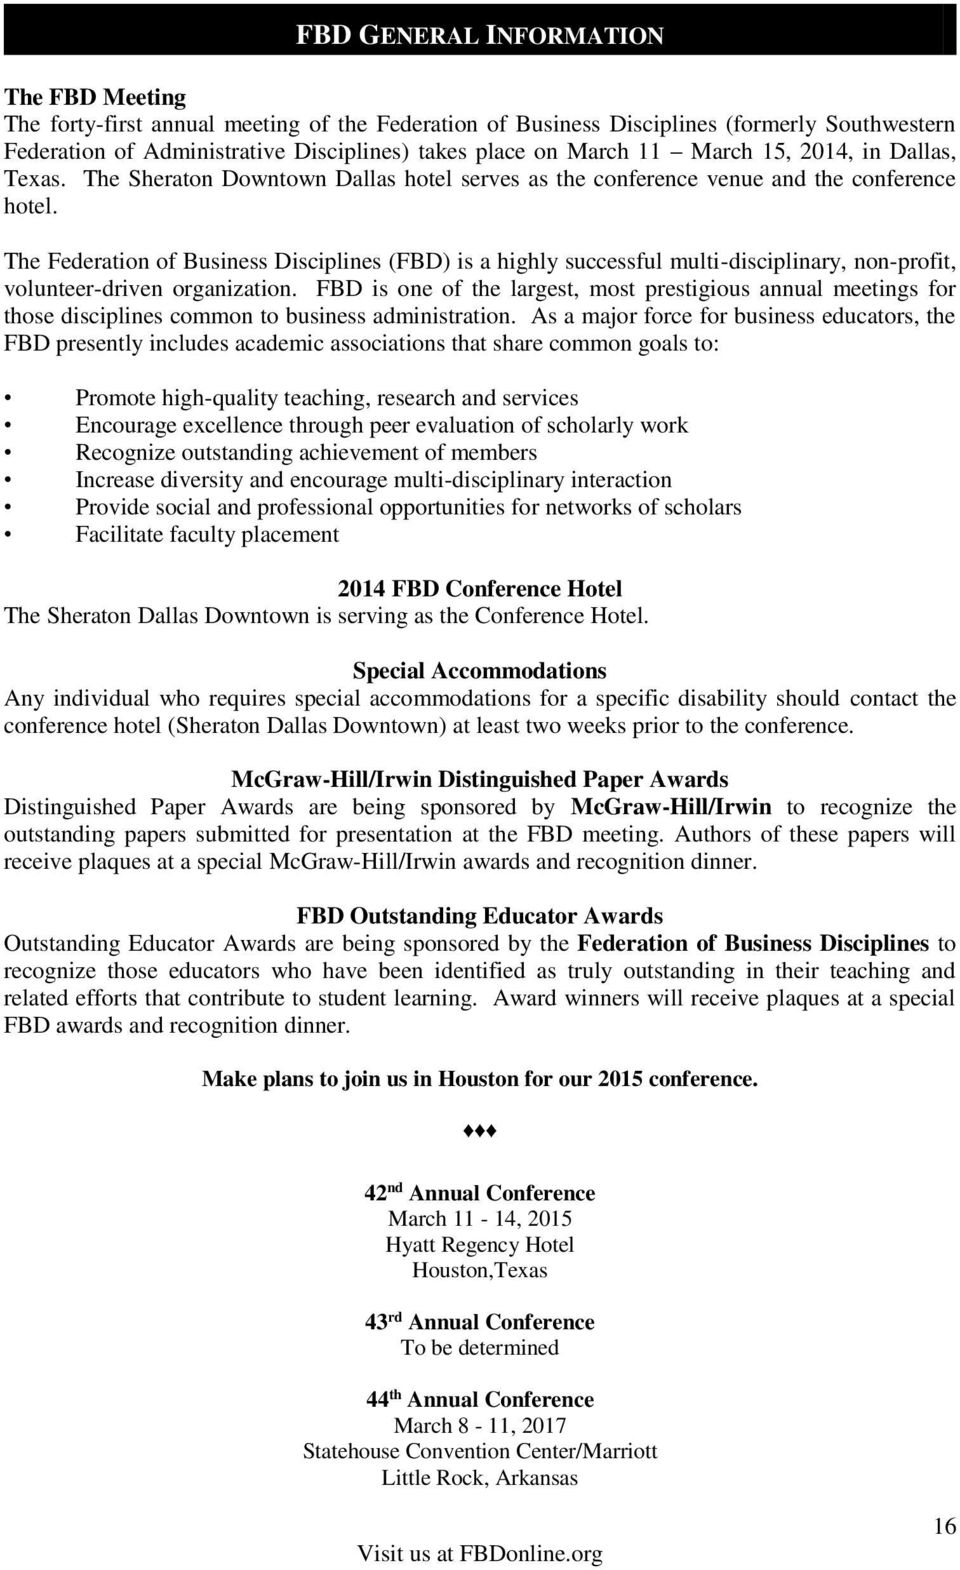 fe6c5805a The Federation of Business Disciplines (FBD) is a highly successful  multi-disciplinary